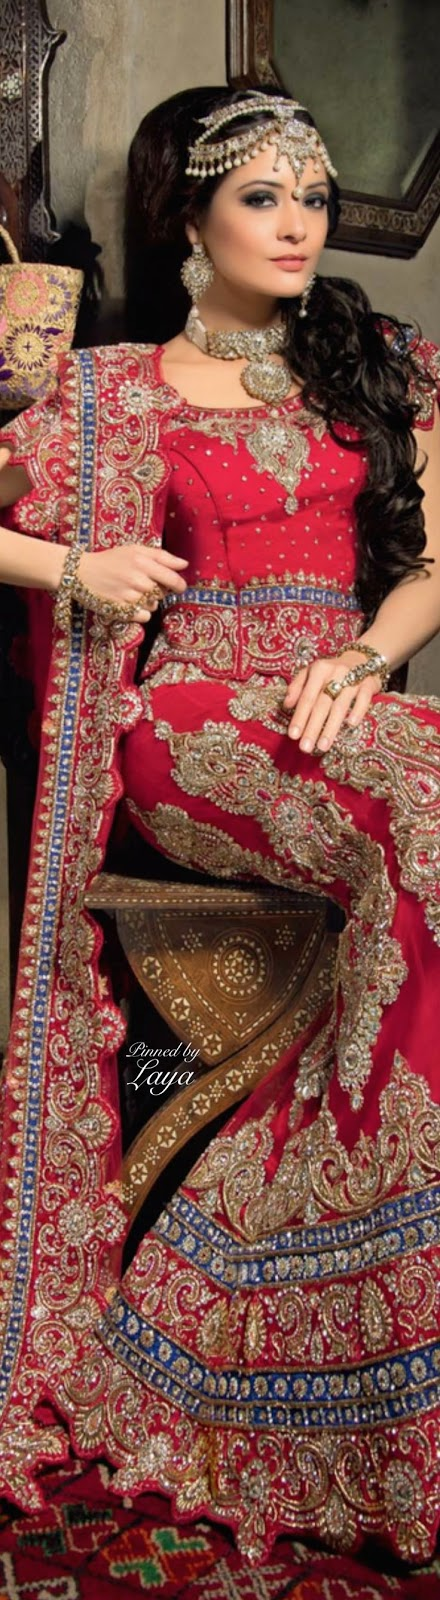 Bridal Lehga Design 2015